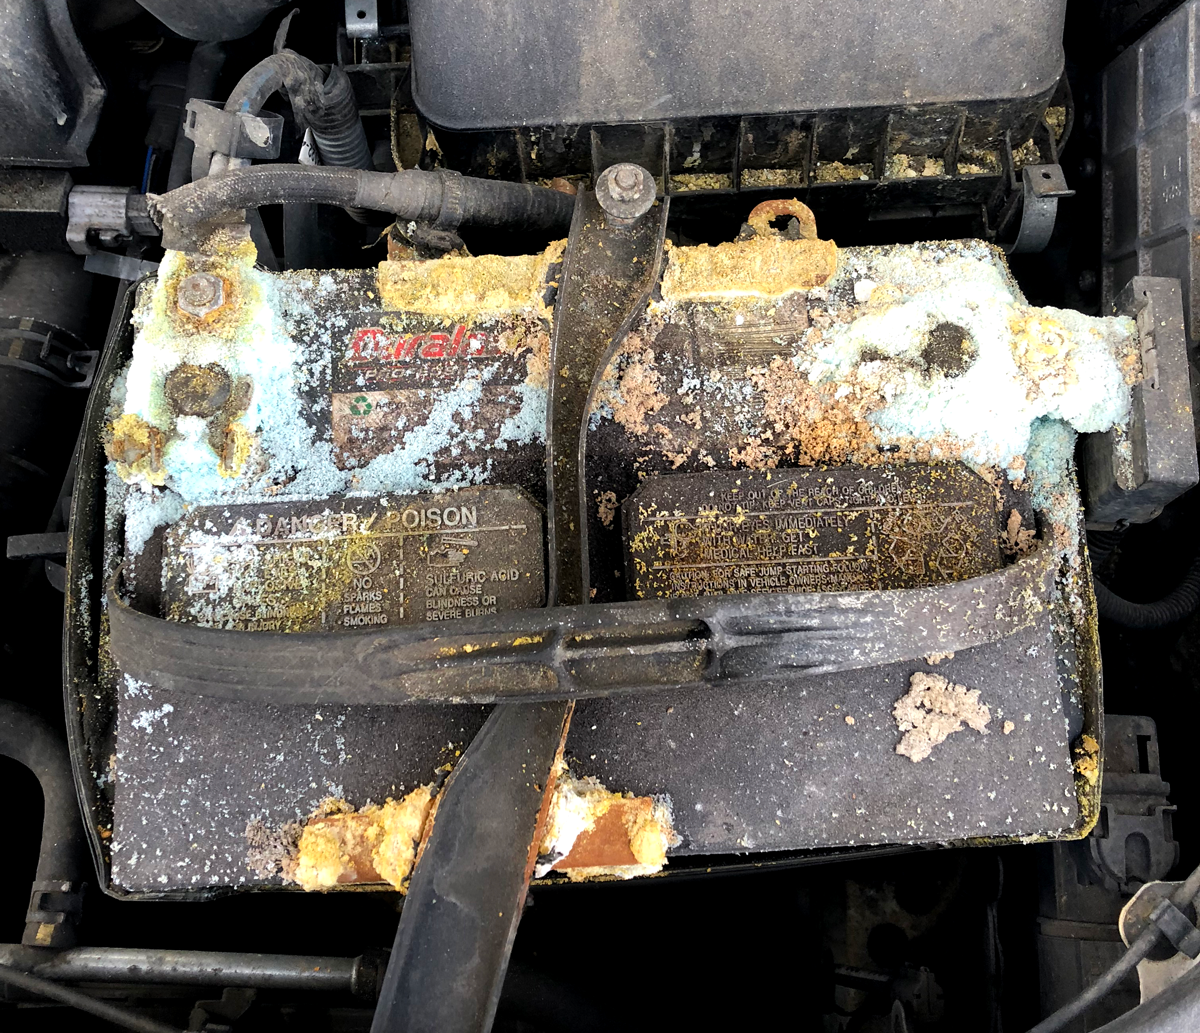 Avoiding unnecessary repairs can often lead to much worse problems, like a dead battery that has corroded everything around it.